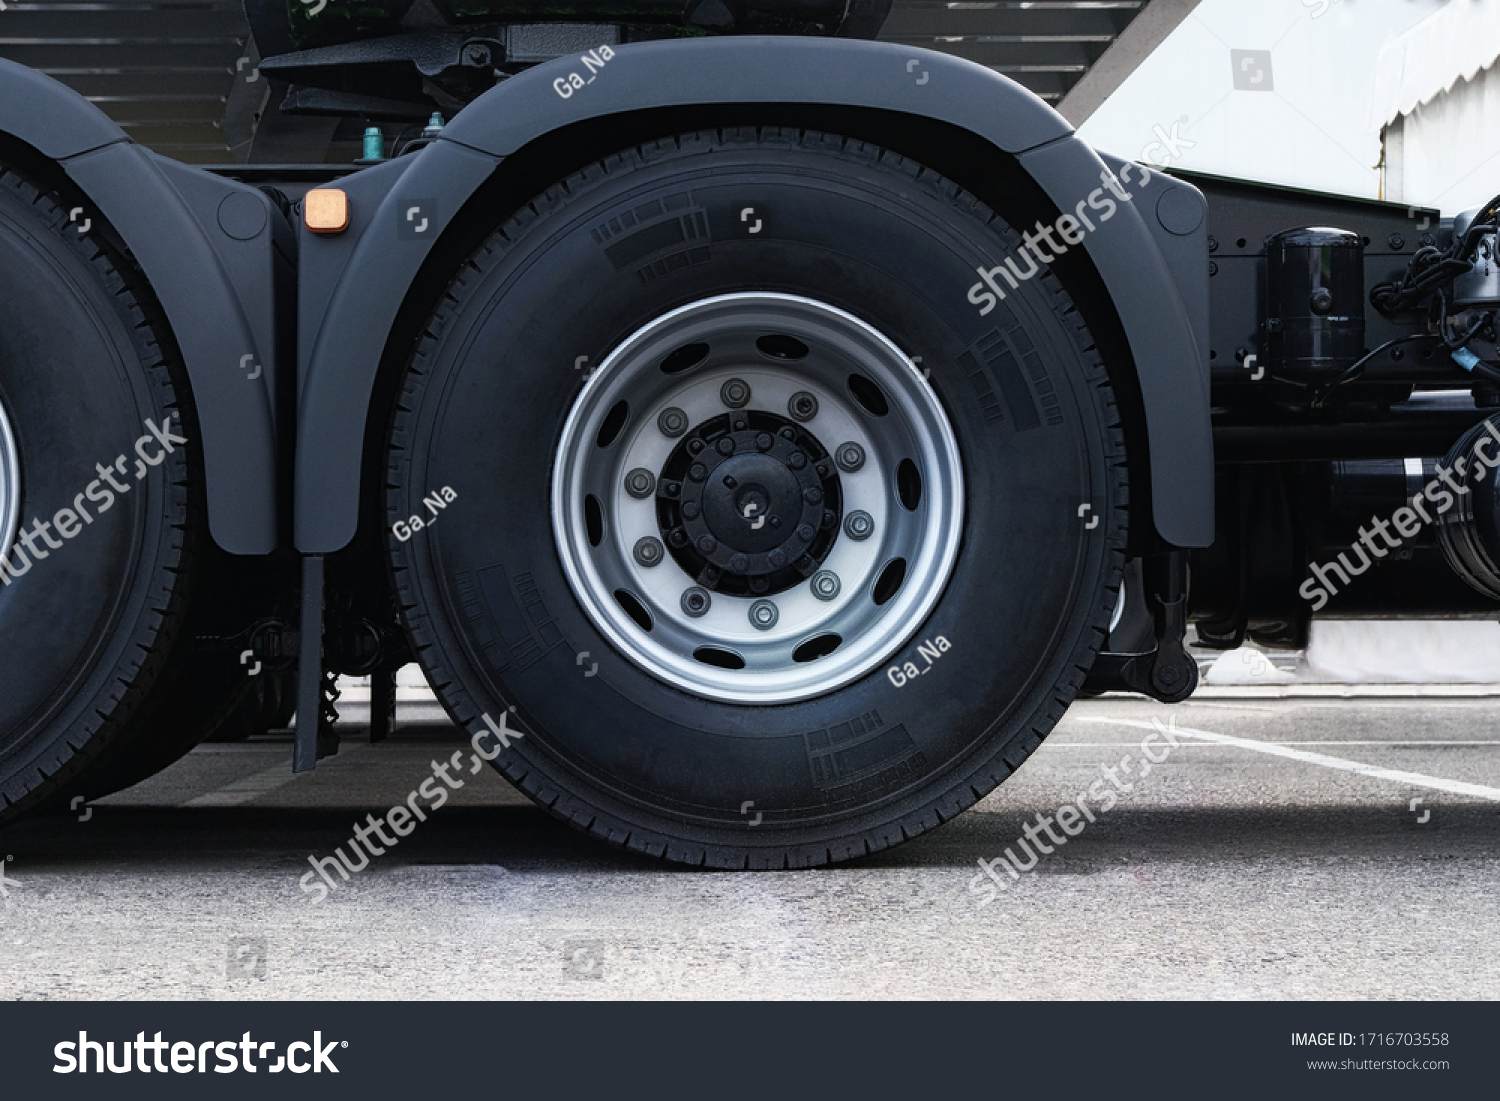 Truck tire, wheel of heavy duty semi truck, close up. Freight industry transport, wheels of modern truck.